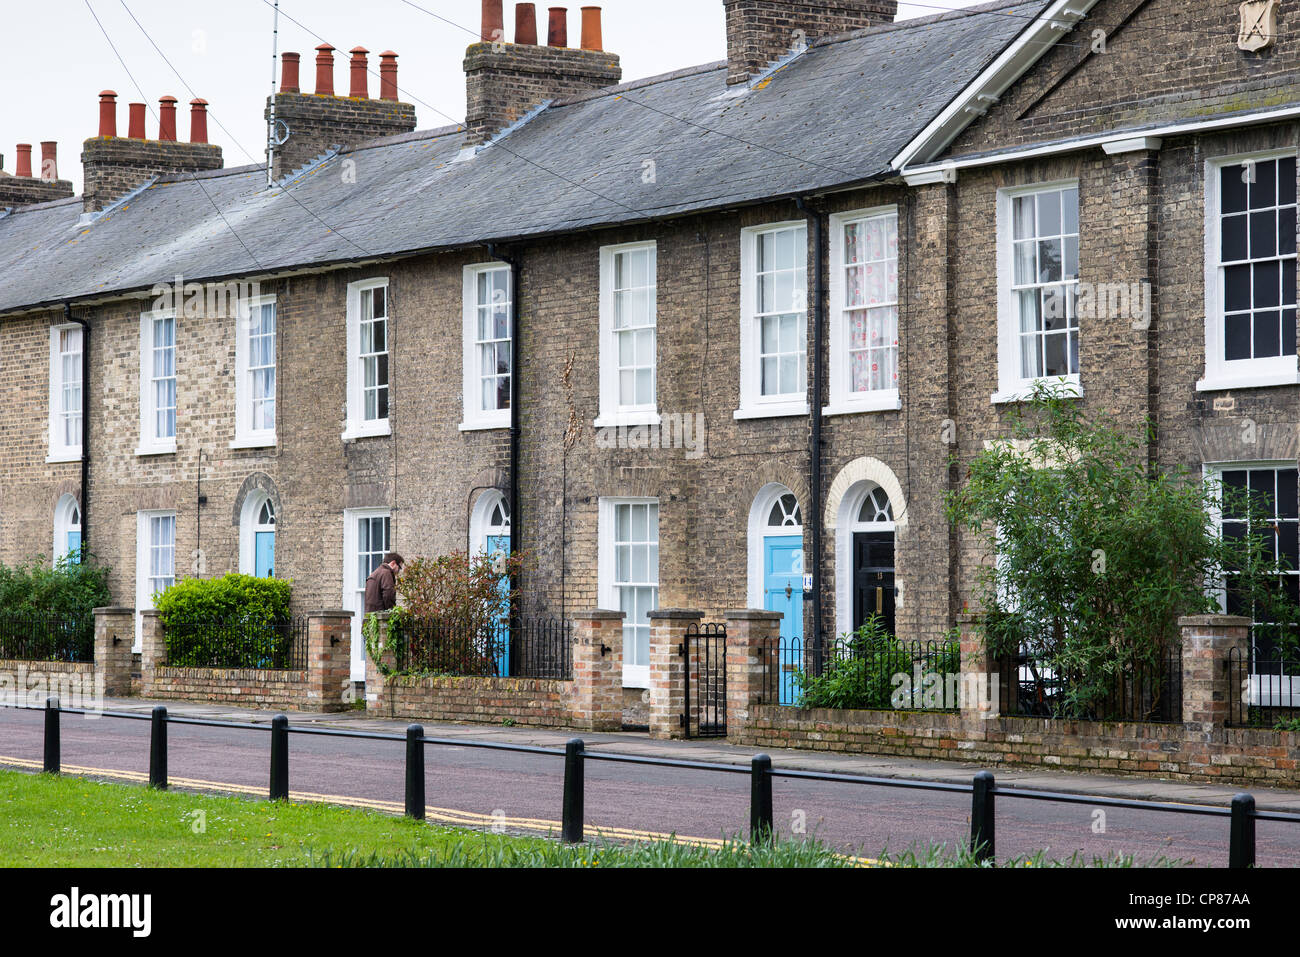 Victorian Terrace houses at New Square, Cambridge, England. - Stock Image